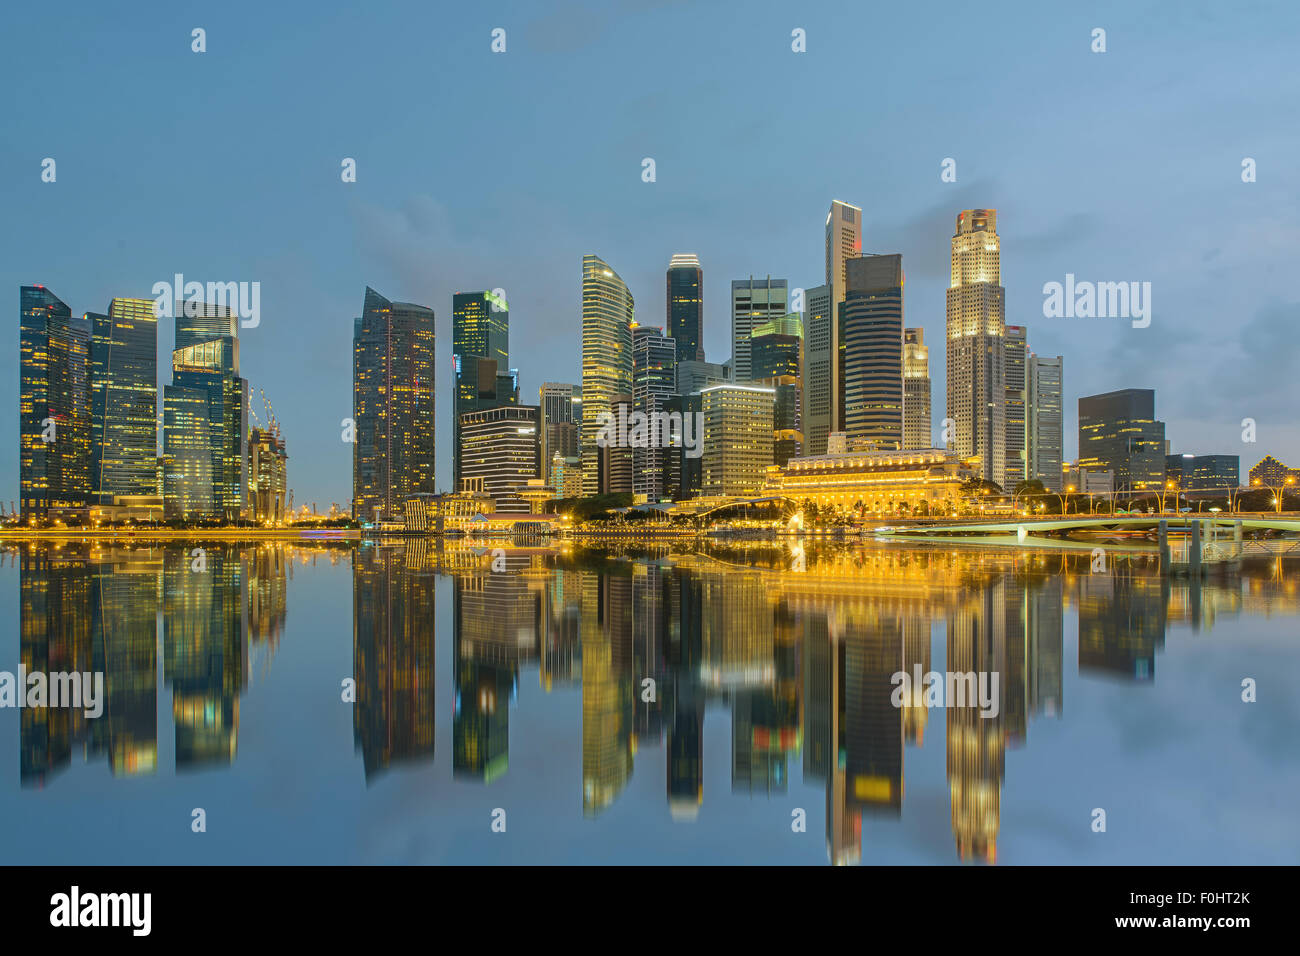 Singapore city skyline at night - Stock Image